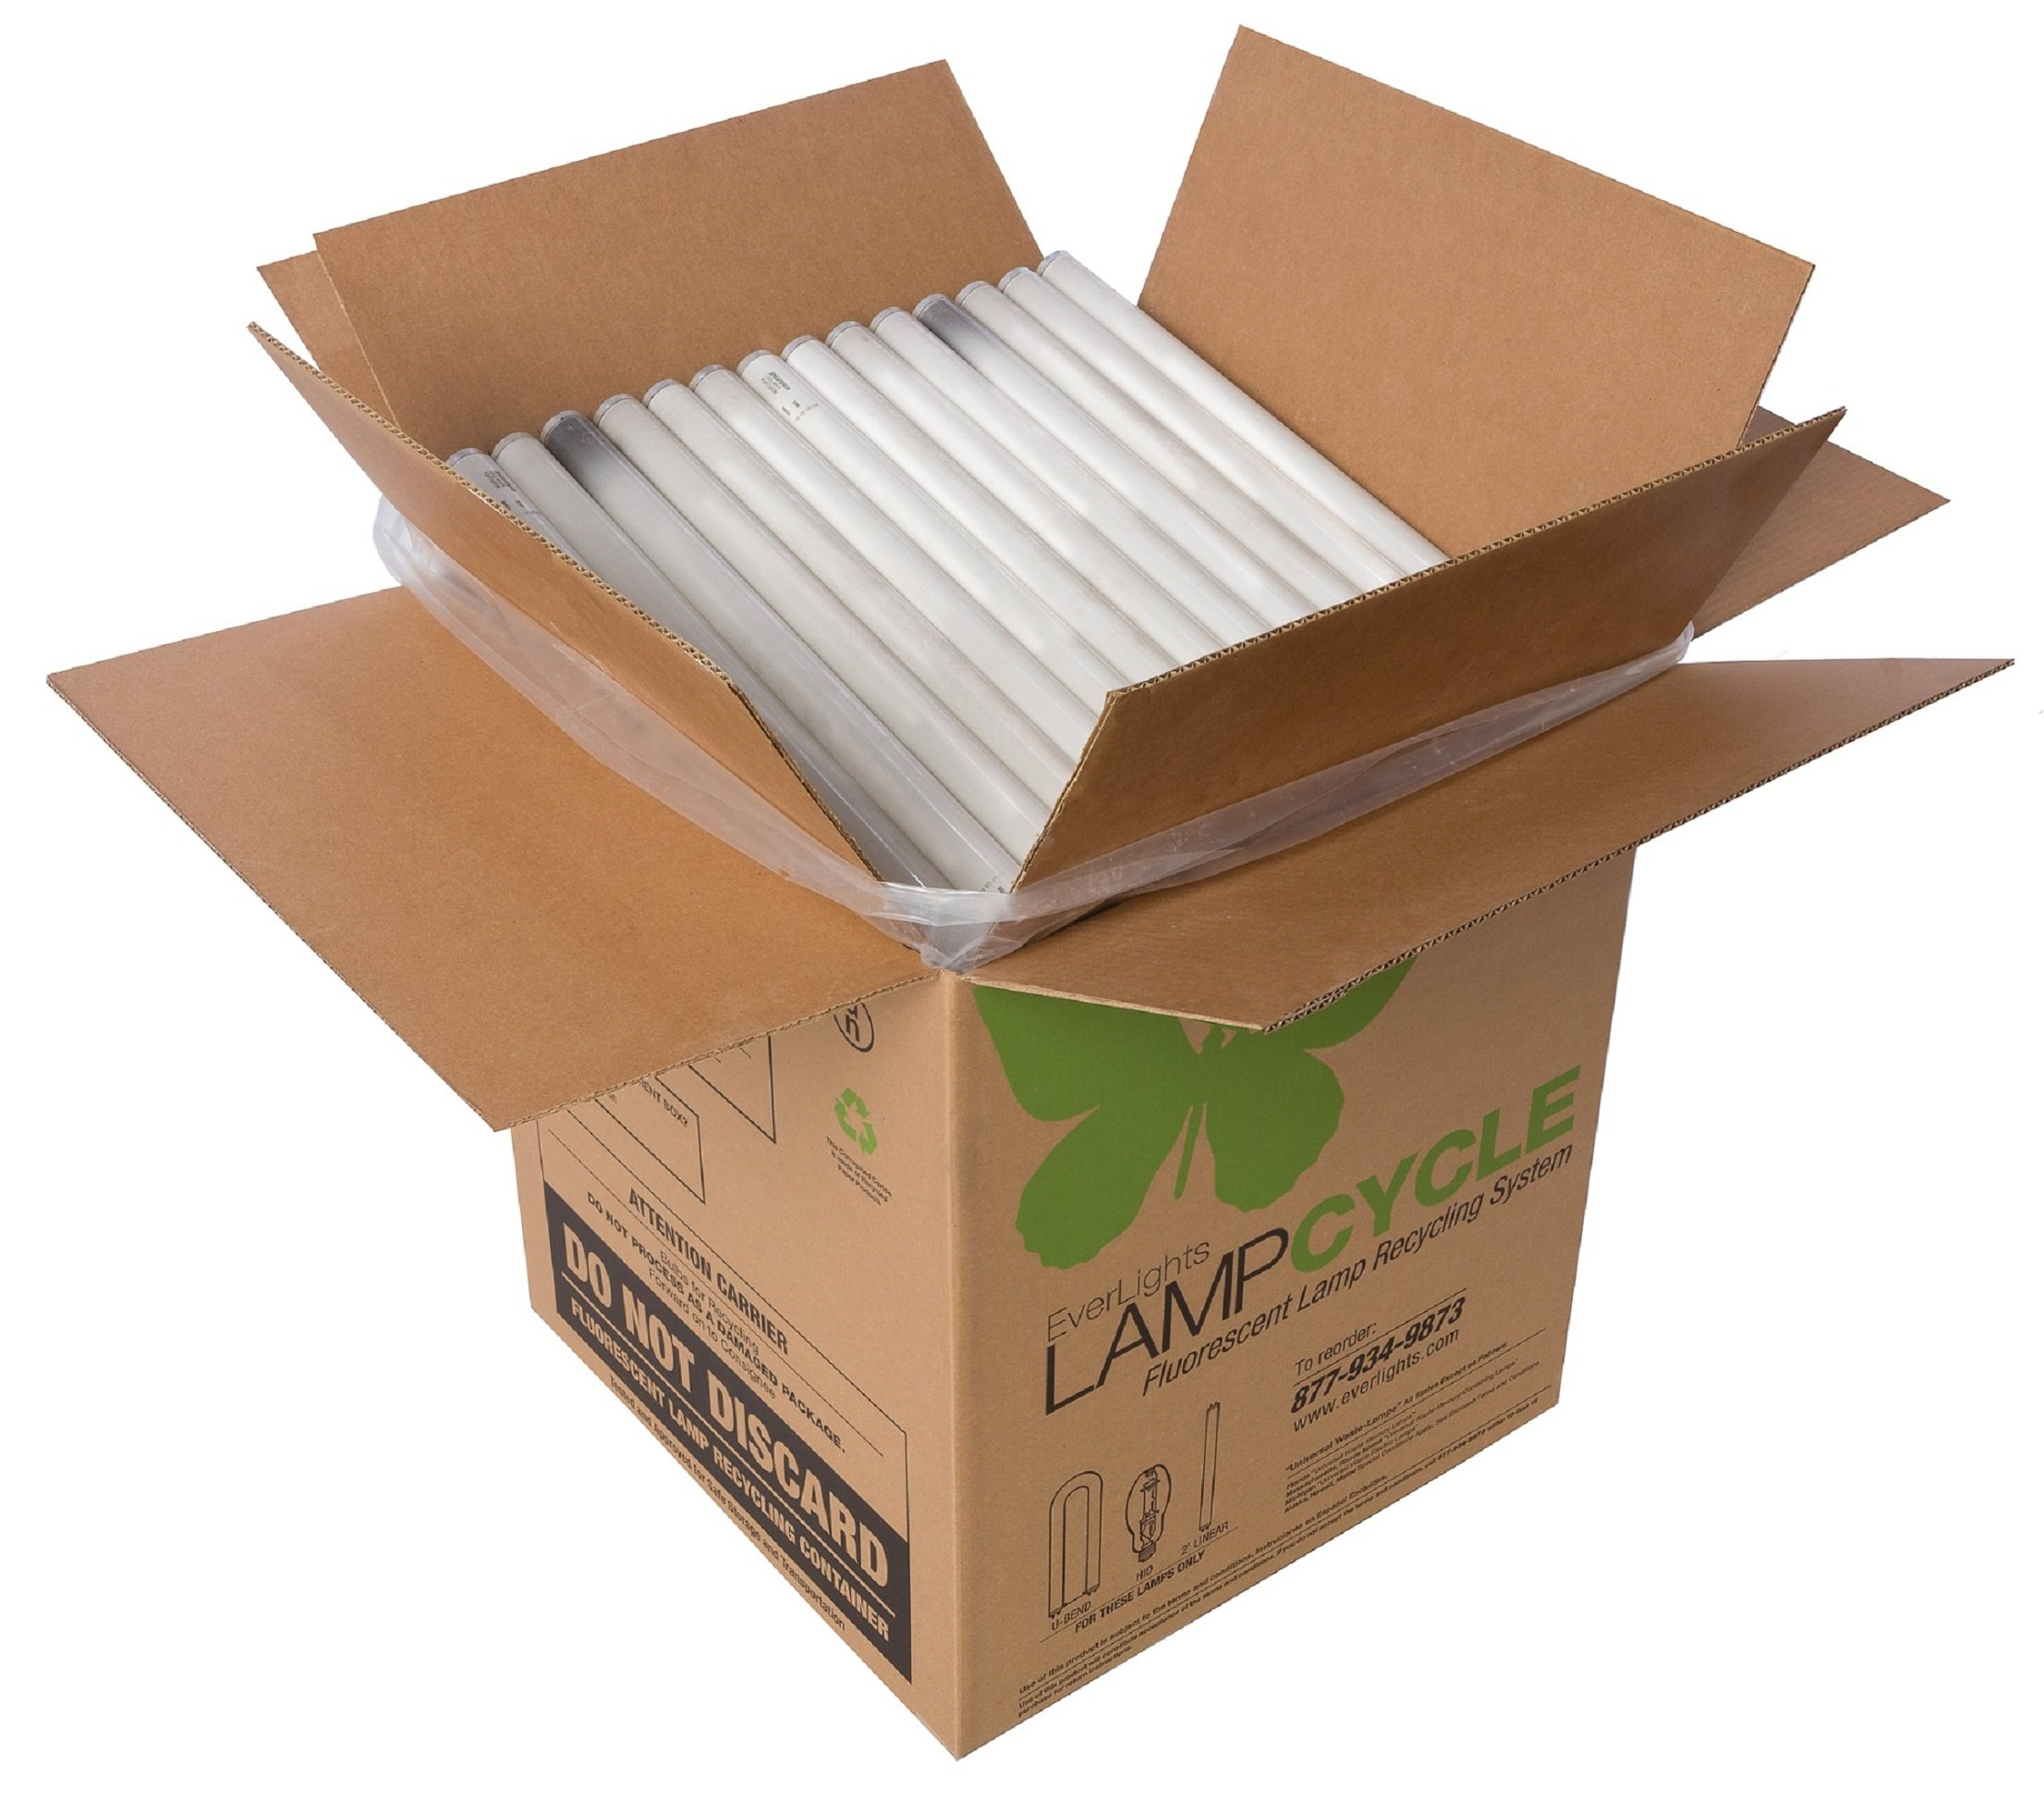 EverLights R2T882 LampCycle 2-Foot Linear Fluorescent Tube Recycling Kit, Small